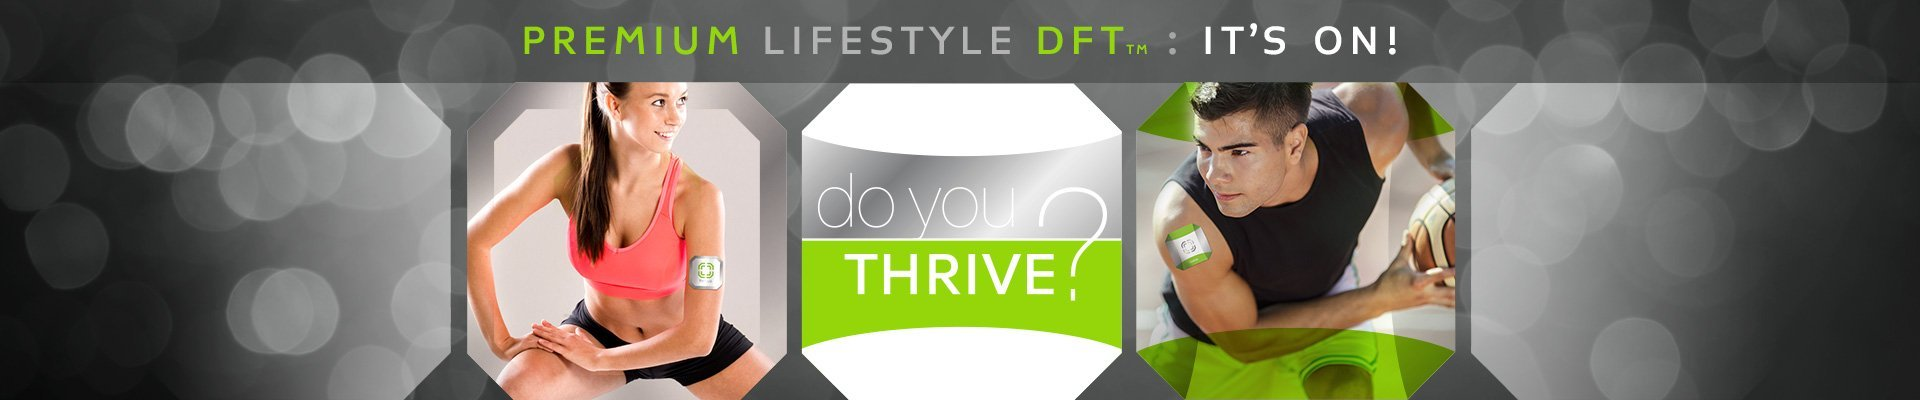 thrive patch dft weightloss lose weight